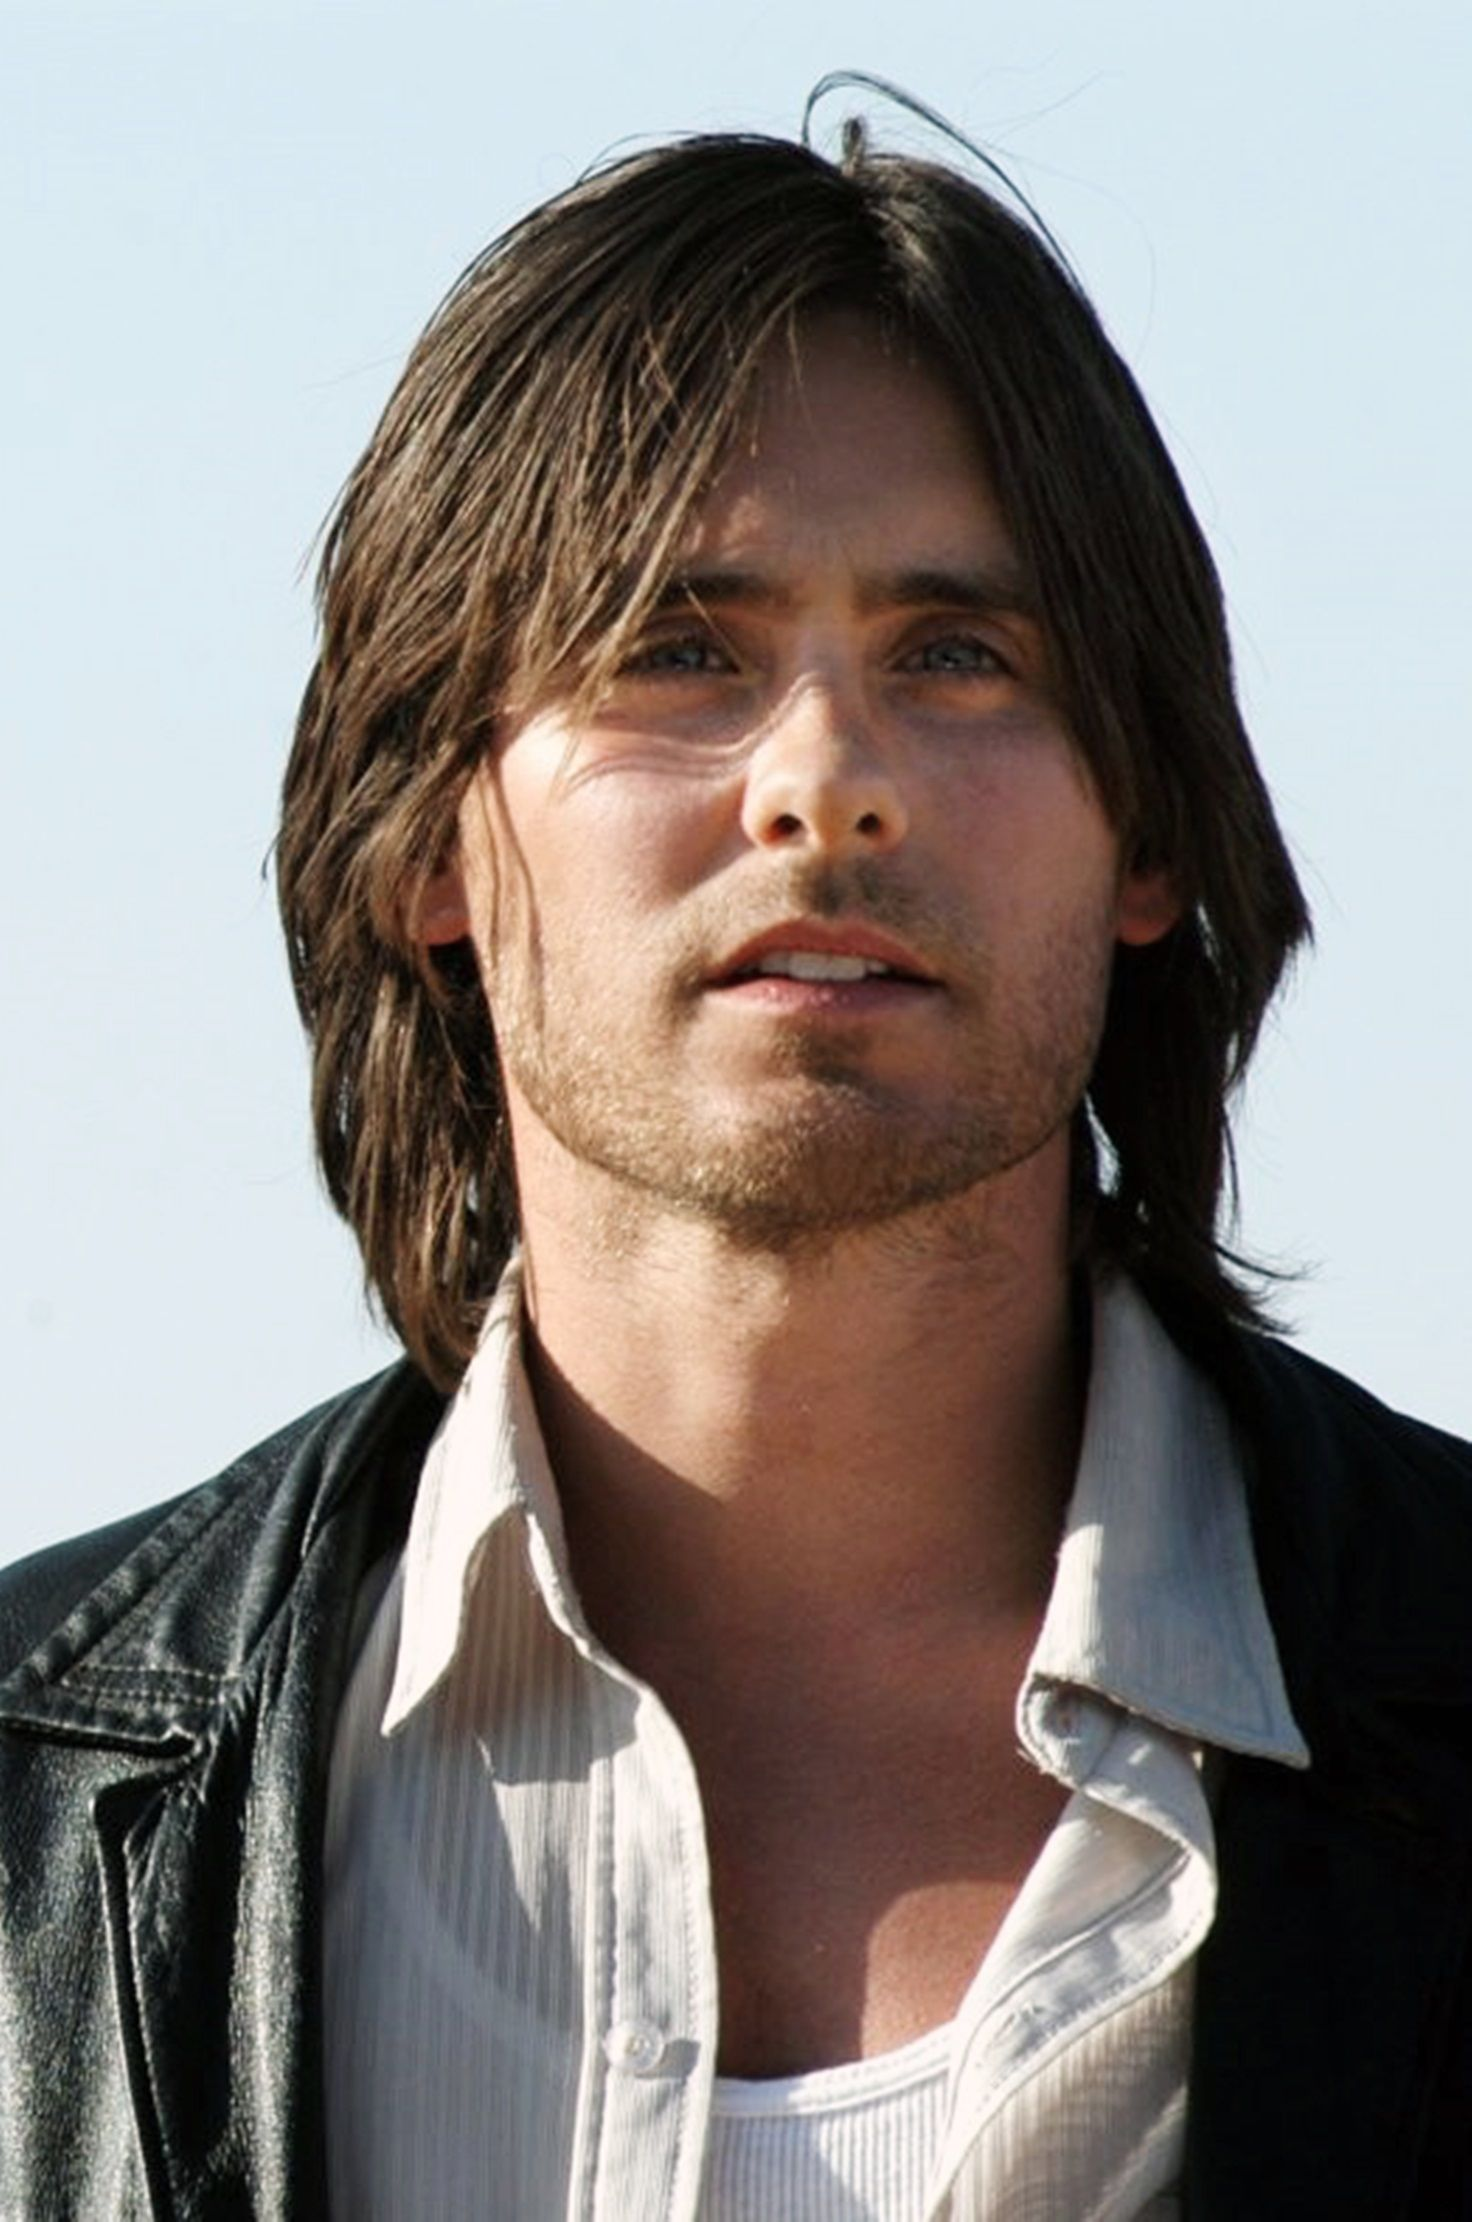 Jared leto vitaly umph uc jared leto movies pinterest